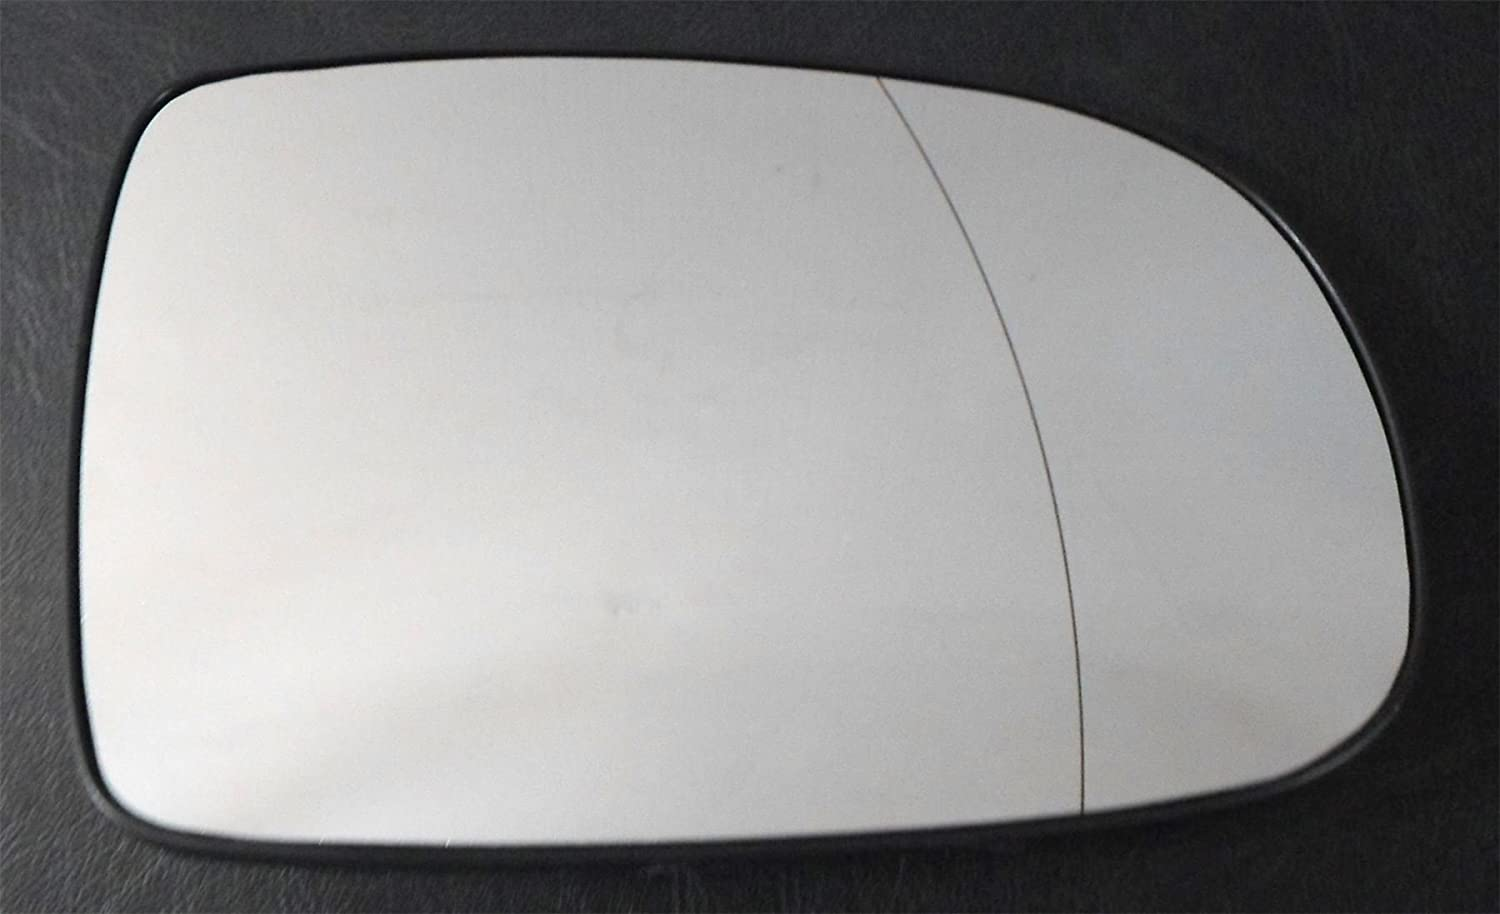 VAUXHALL CORSA C 2000-2006 WING MIRROR GLASS LEFT HAND SIDE